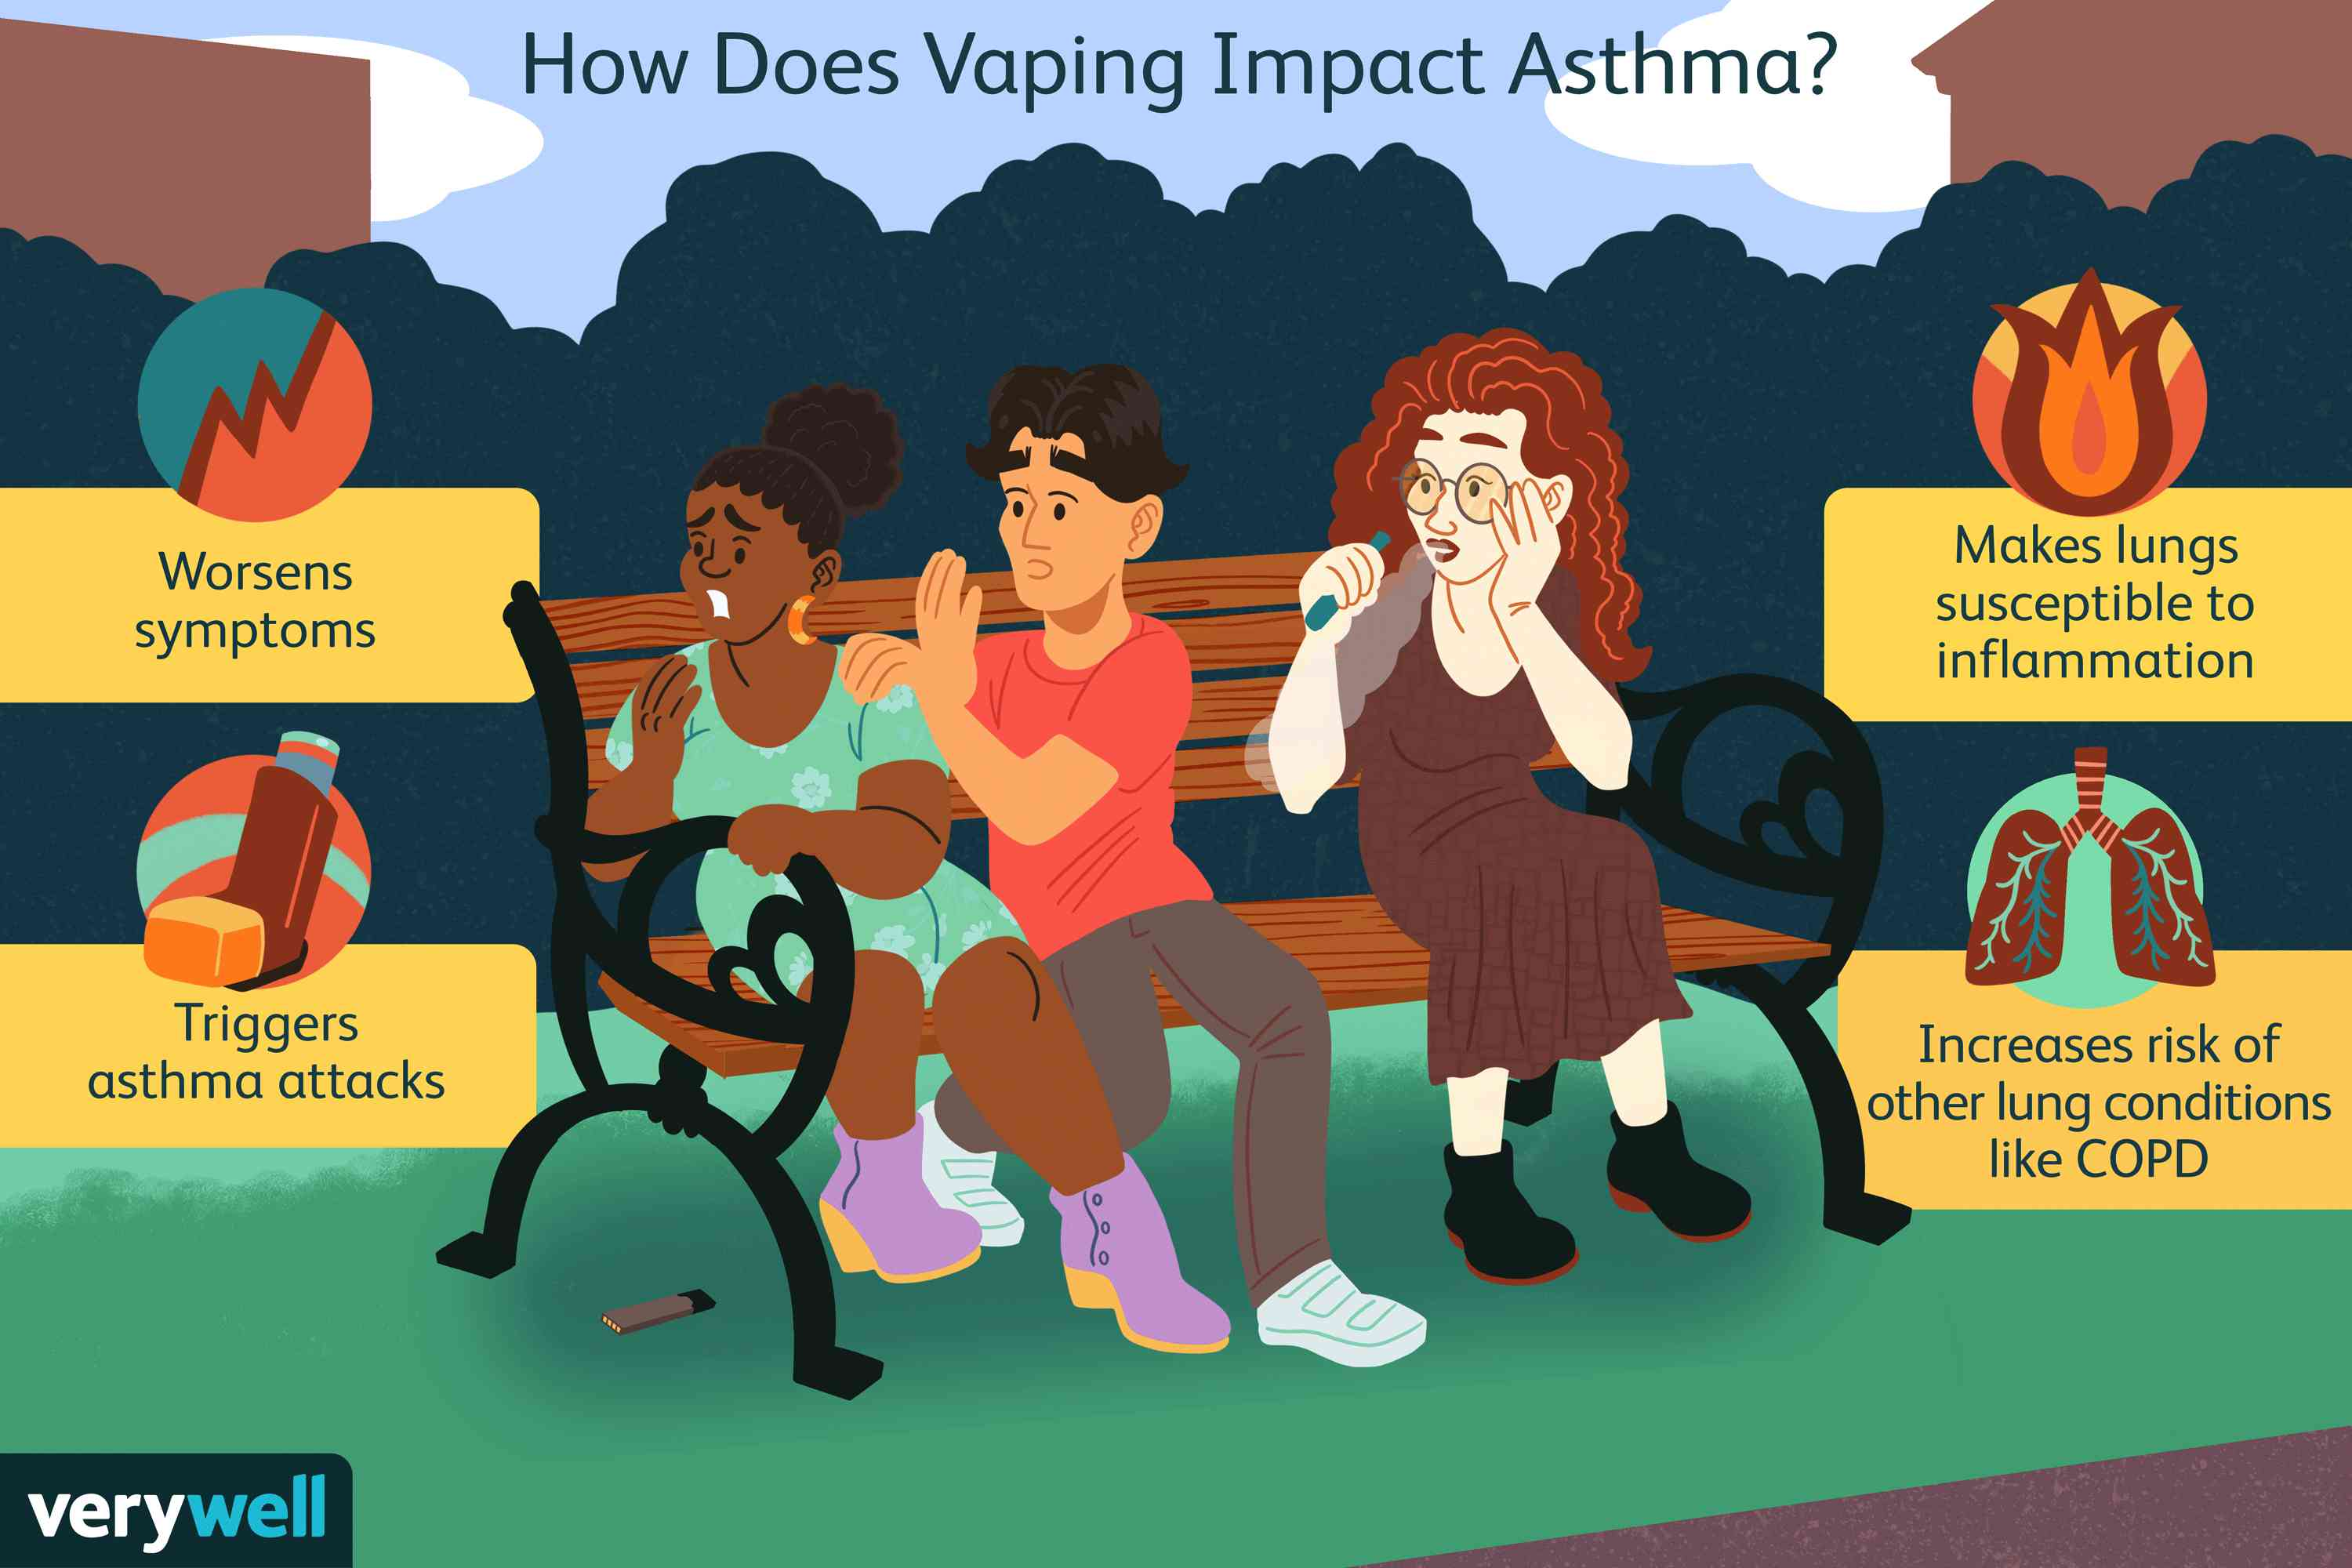 How Does Vaping Impact Asthma?